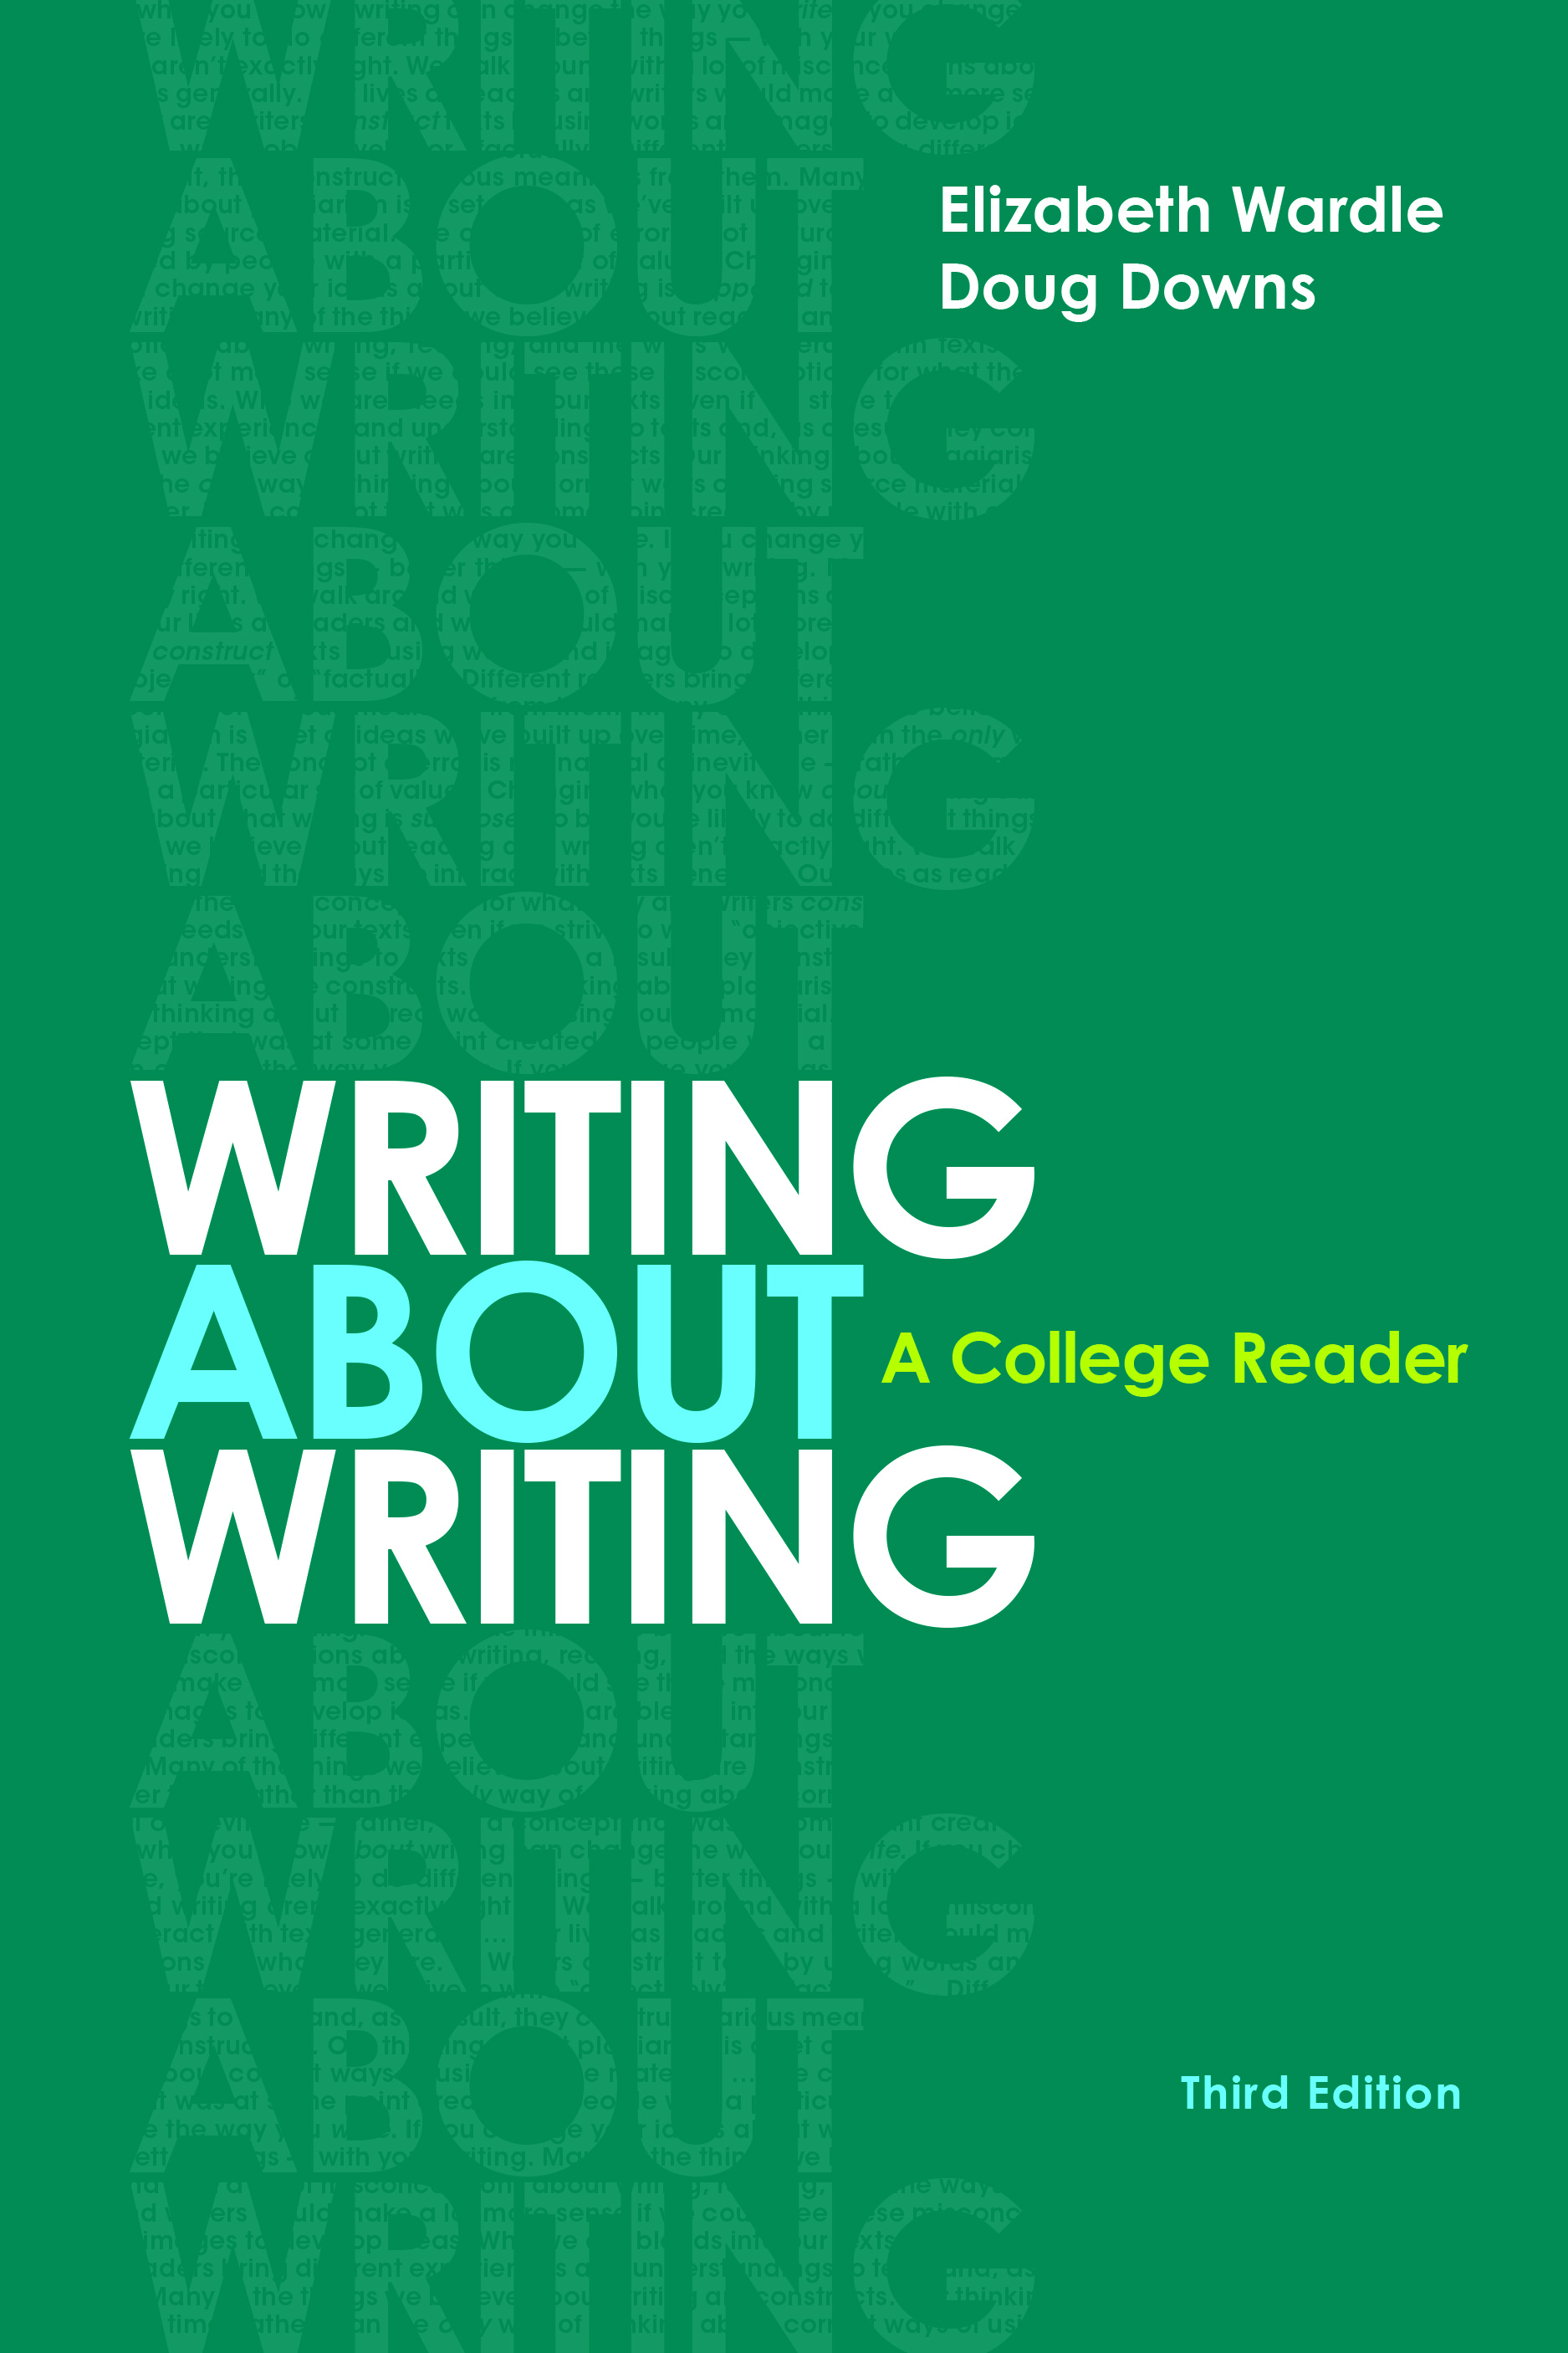 Writing about writing textbook